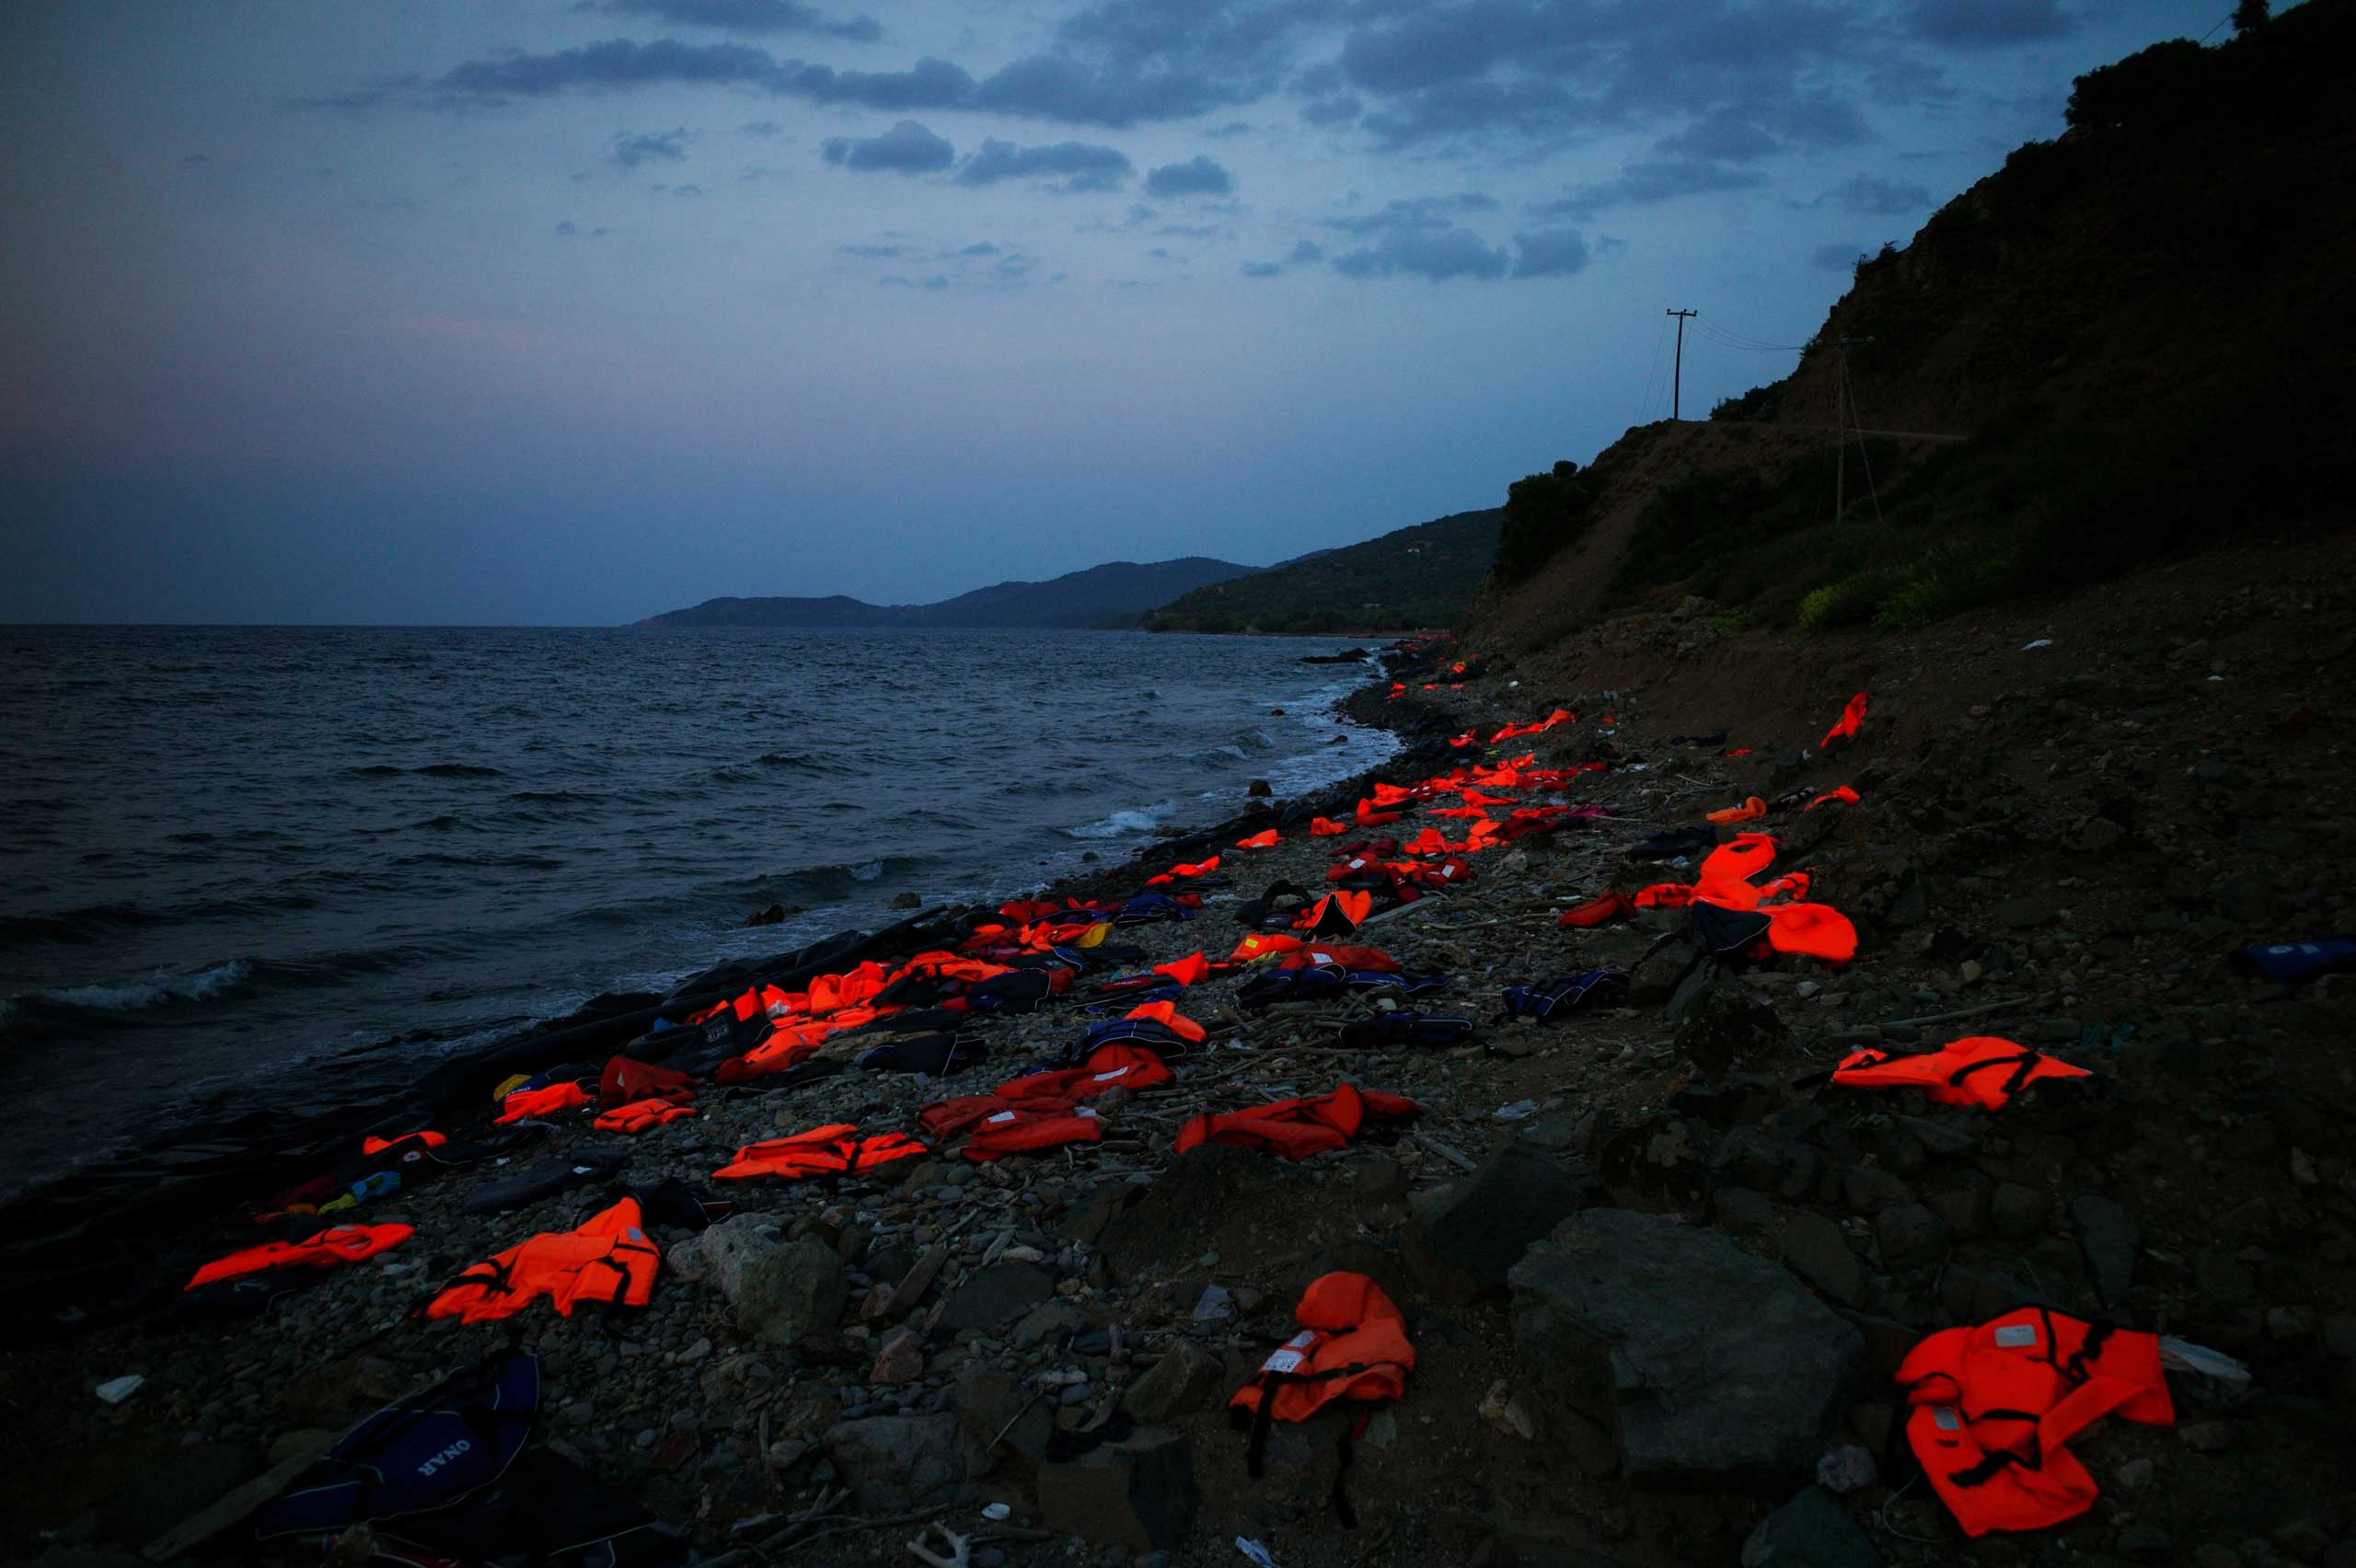 Life vests left on the shore of the Greek island of Lesbos, Sept. 8, 2015.